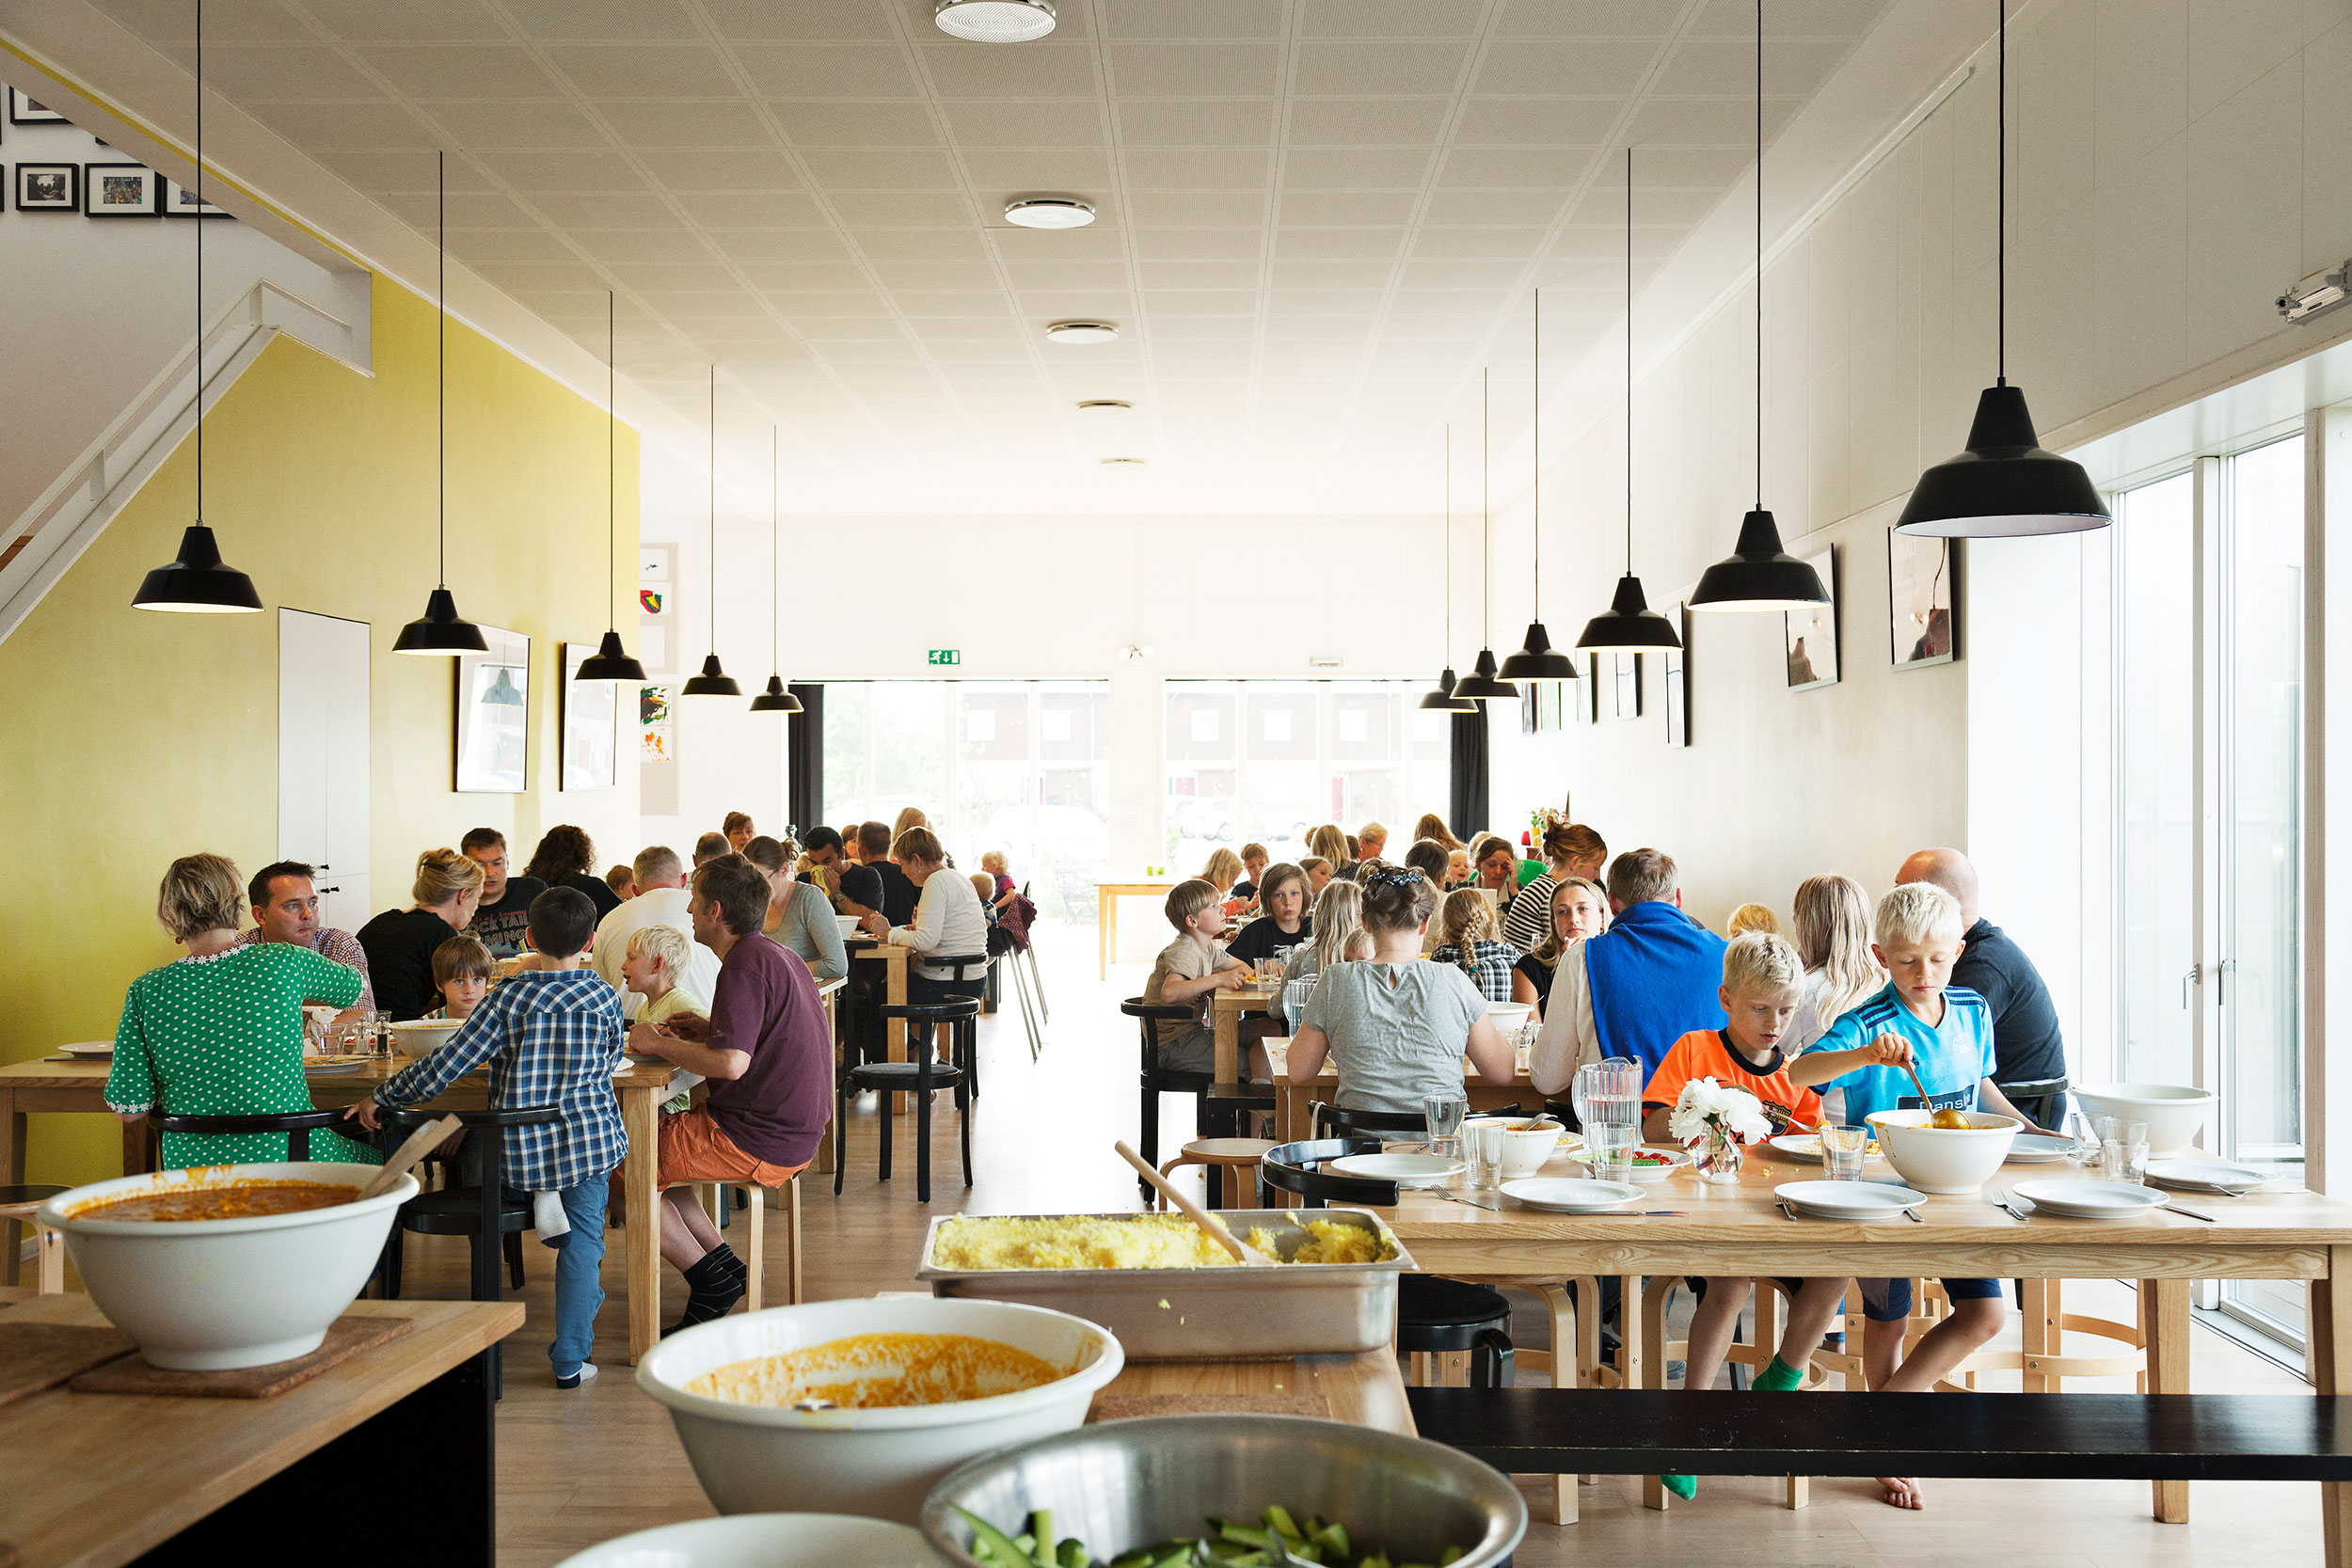 Lang Eng, Copenhagen. Designed by the architect Dorte Mandrup, this co-housing community includes a shared garden, a 20-seat cinema for collective film and TV watching and an industrial-sized kitchen where residents take turns to prepare shared meals.